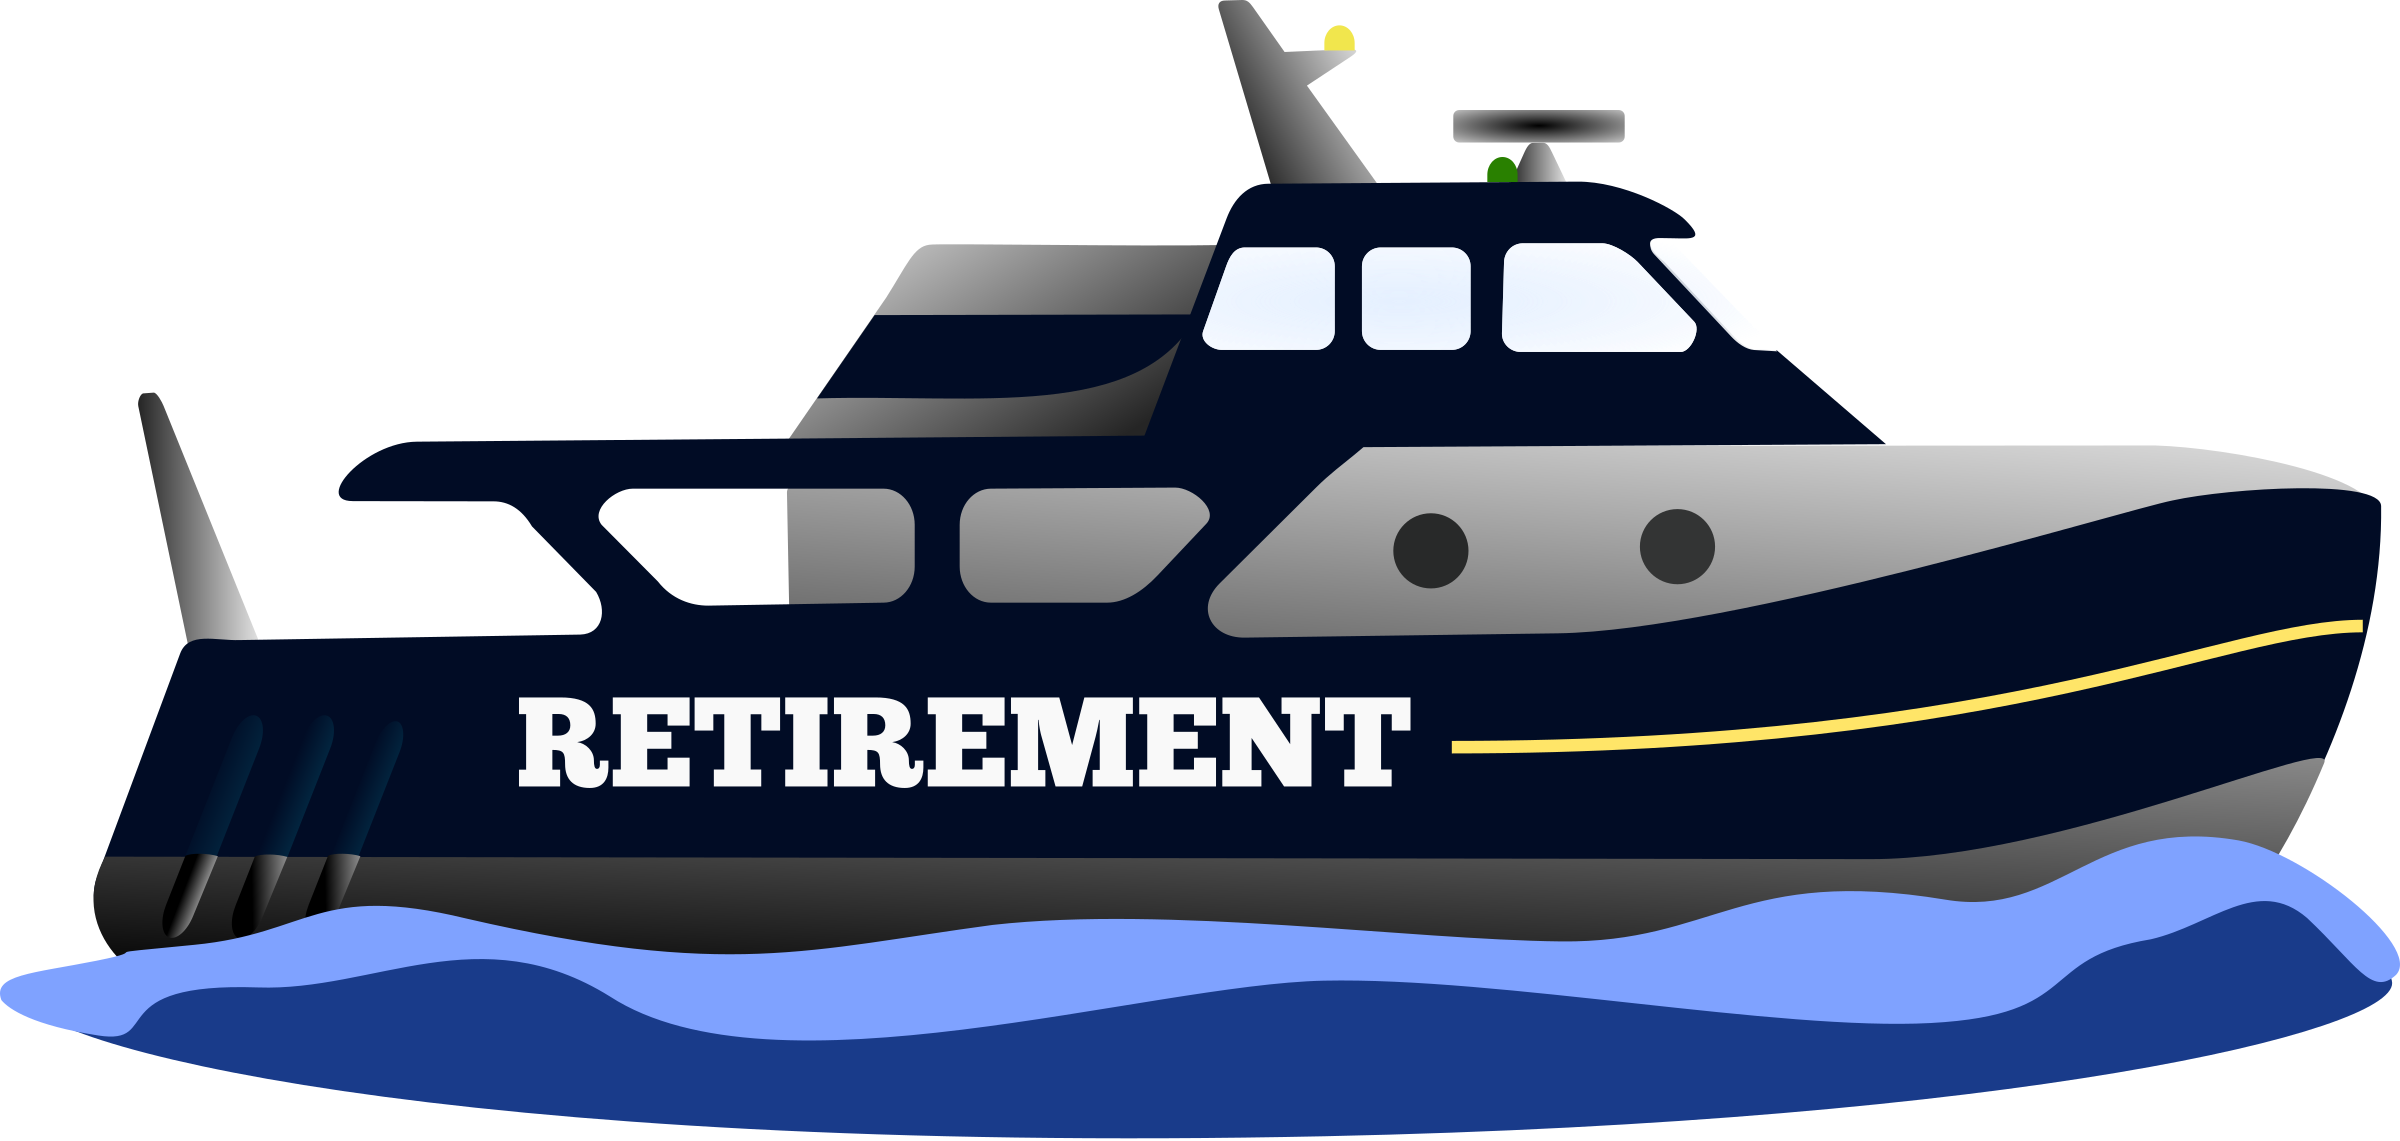 jpg library Big image png. Retirement clipart.